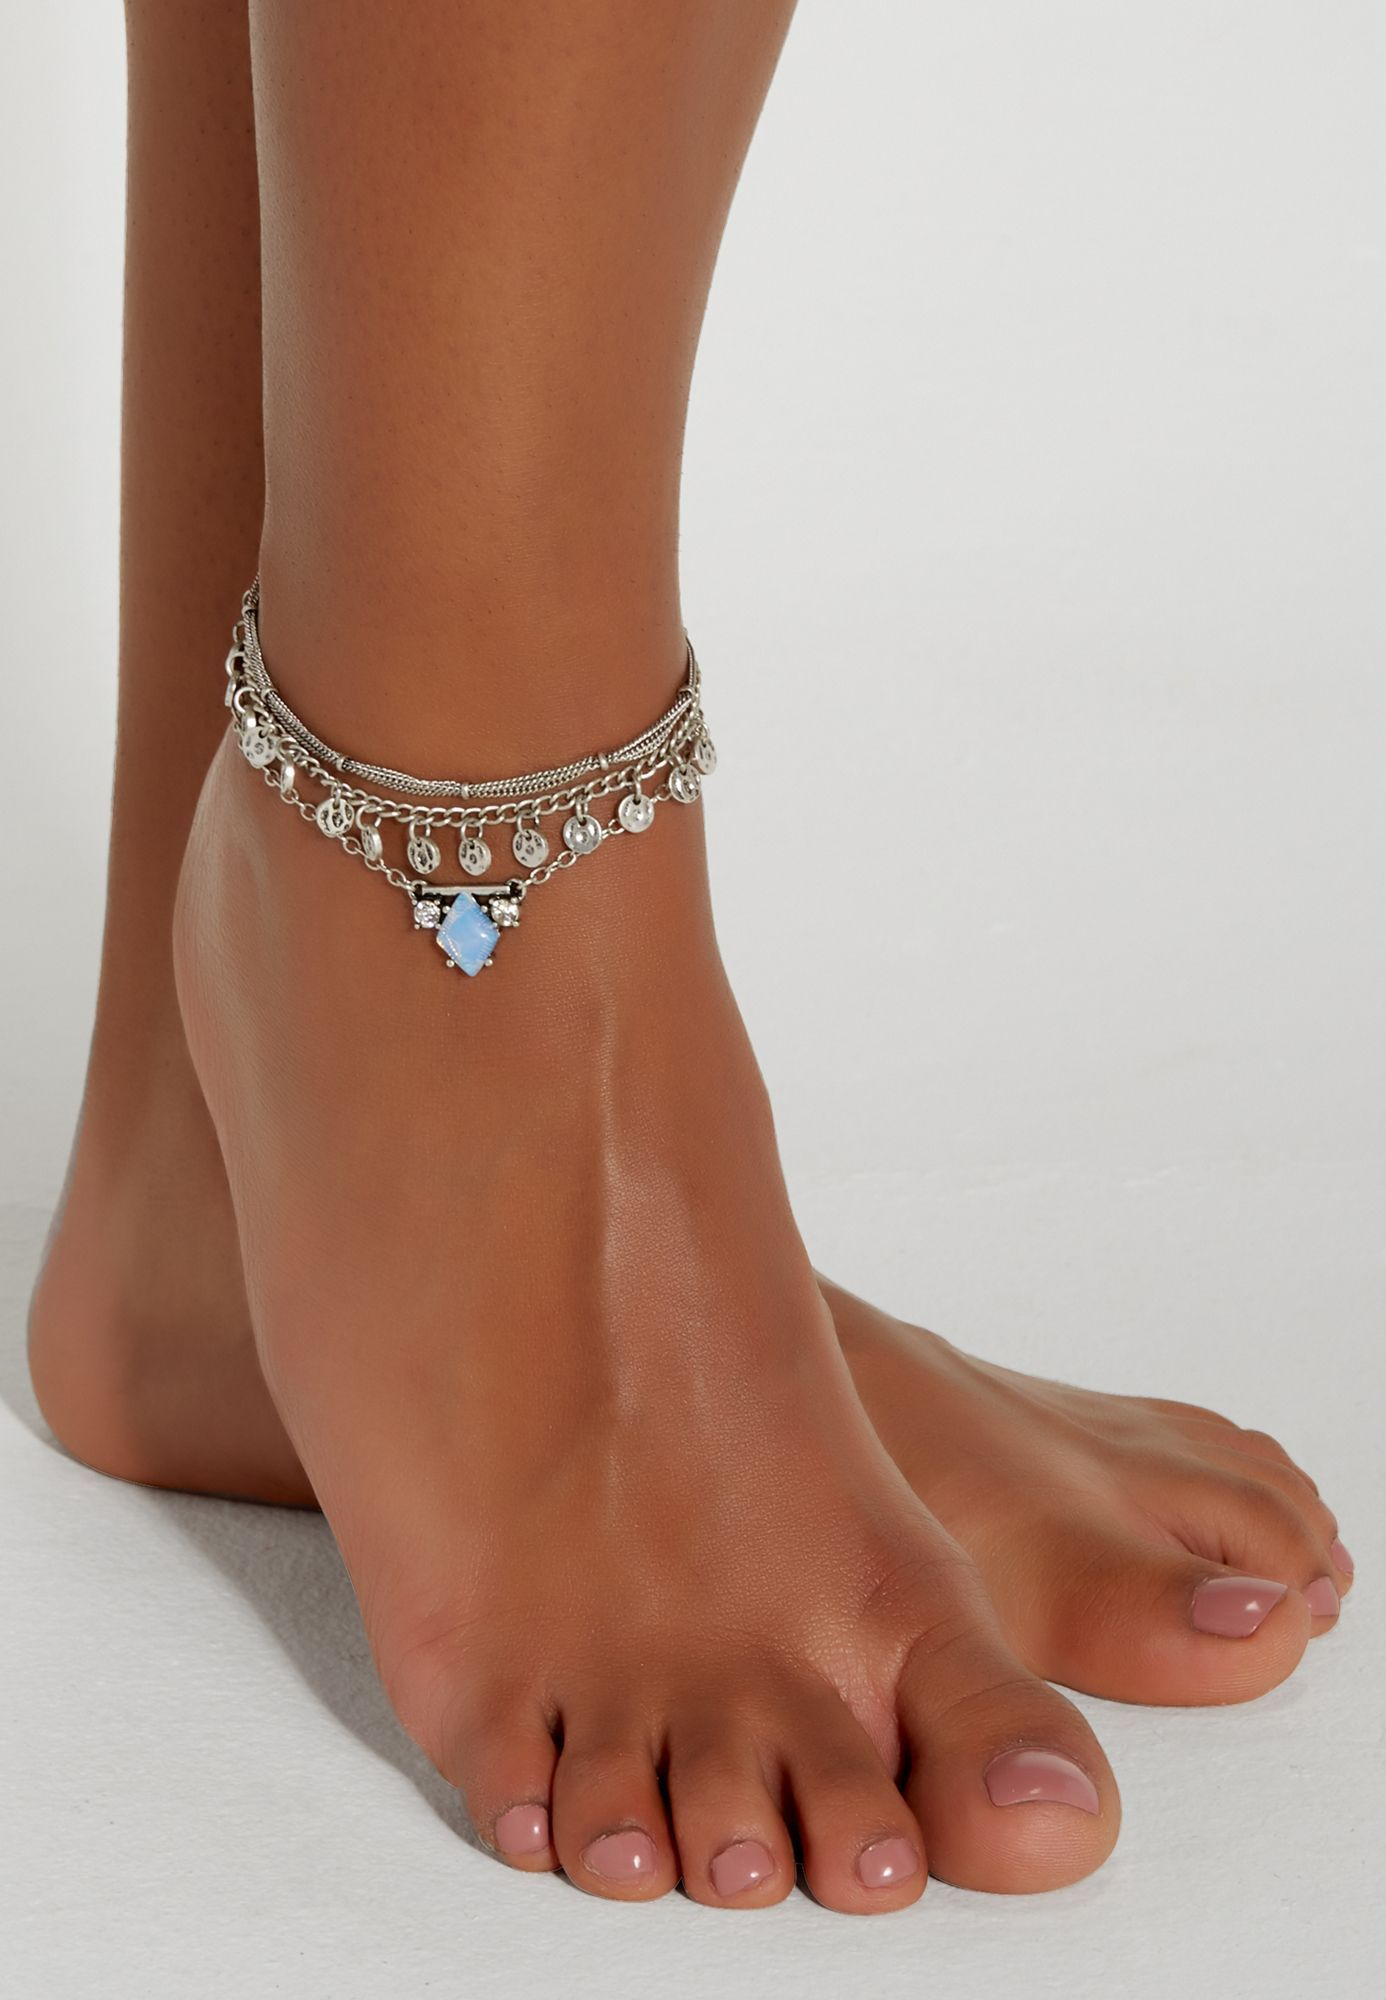 rope anklets cut itm rdcl bracelet and fine chain diamond gold jewelry solid anklet b model